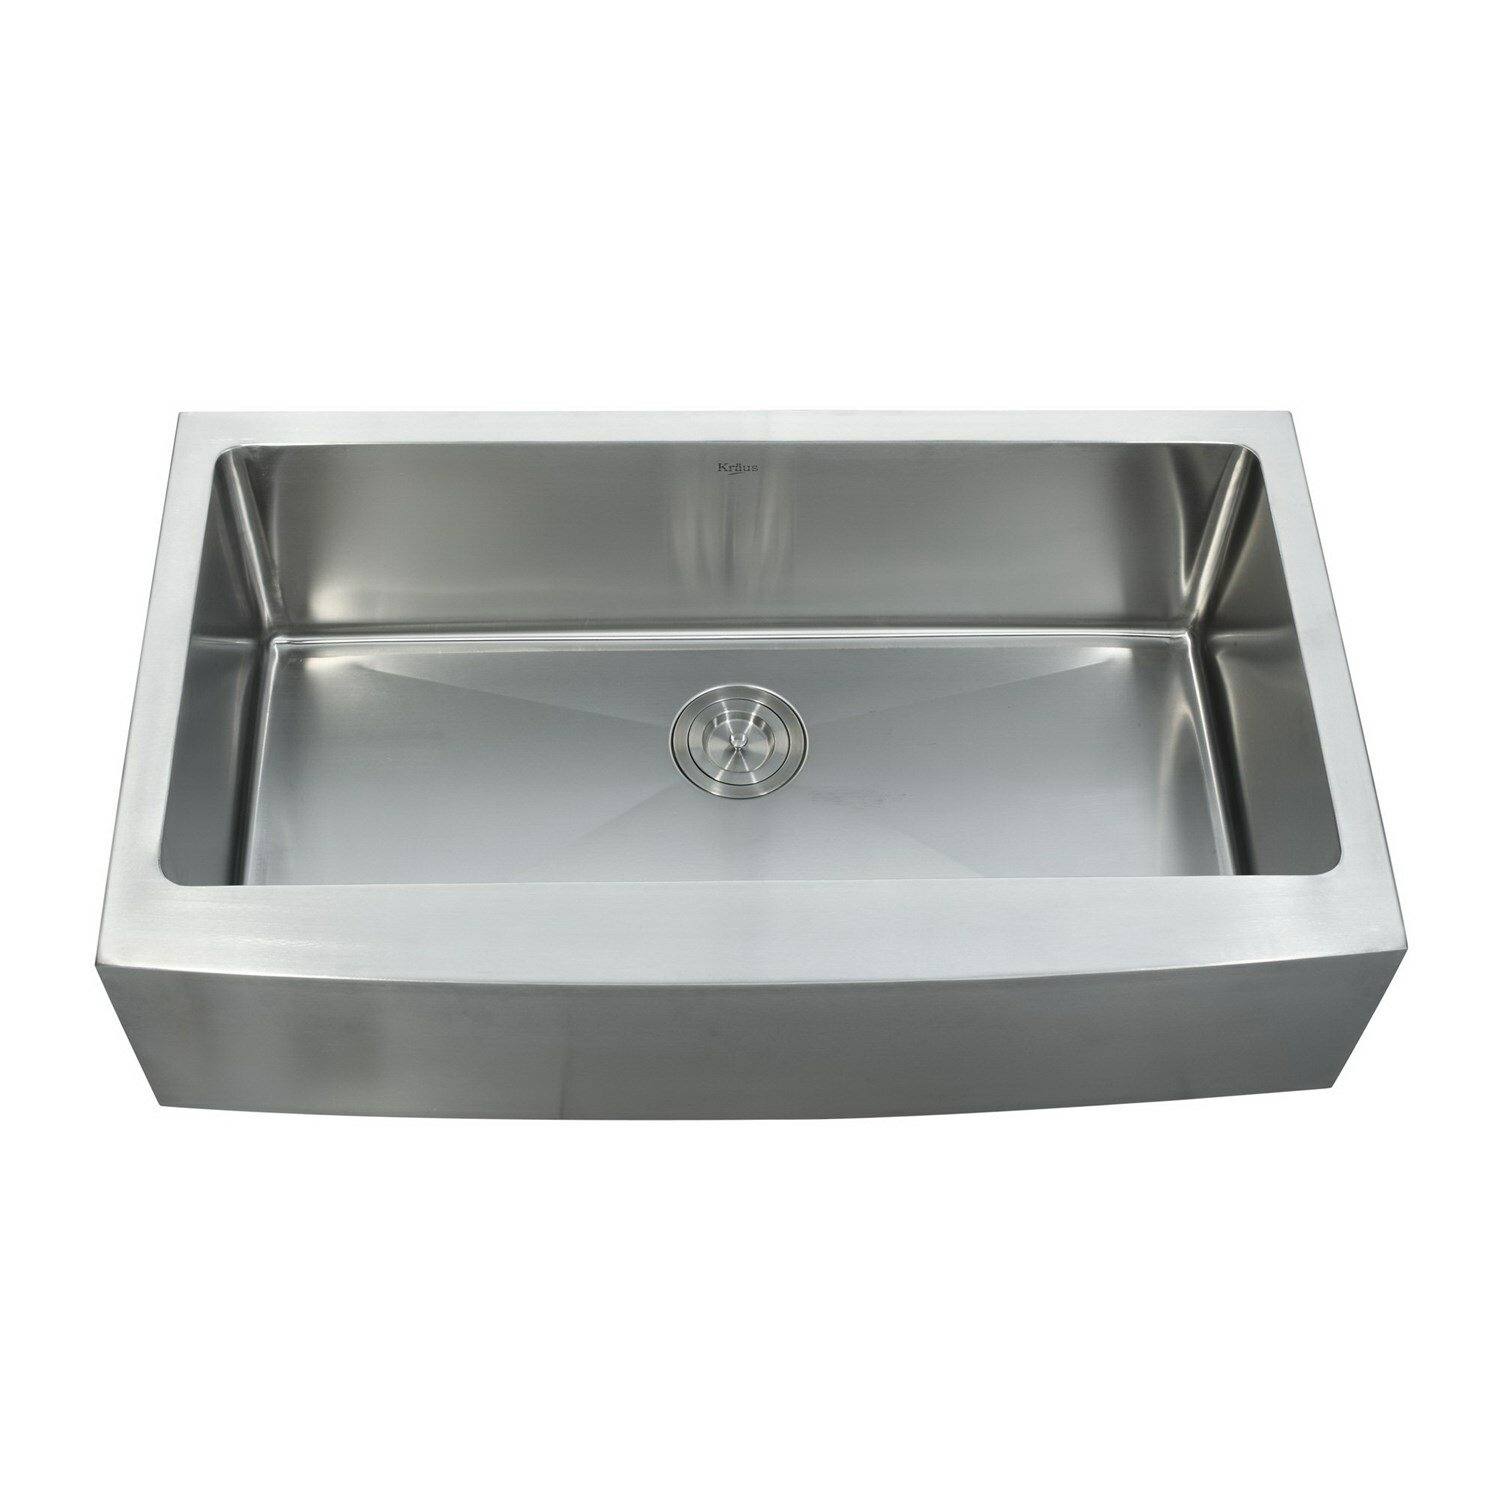 33x22 Stainless Steel Kitchen Sink | Kitchen Sinks Stainless Steel | Elkay Stainless Steel Kitchen Sinks